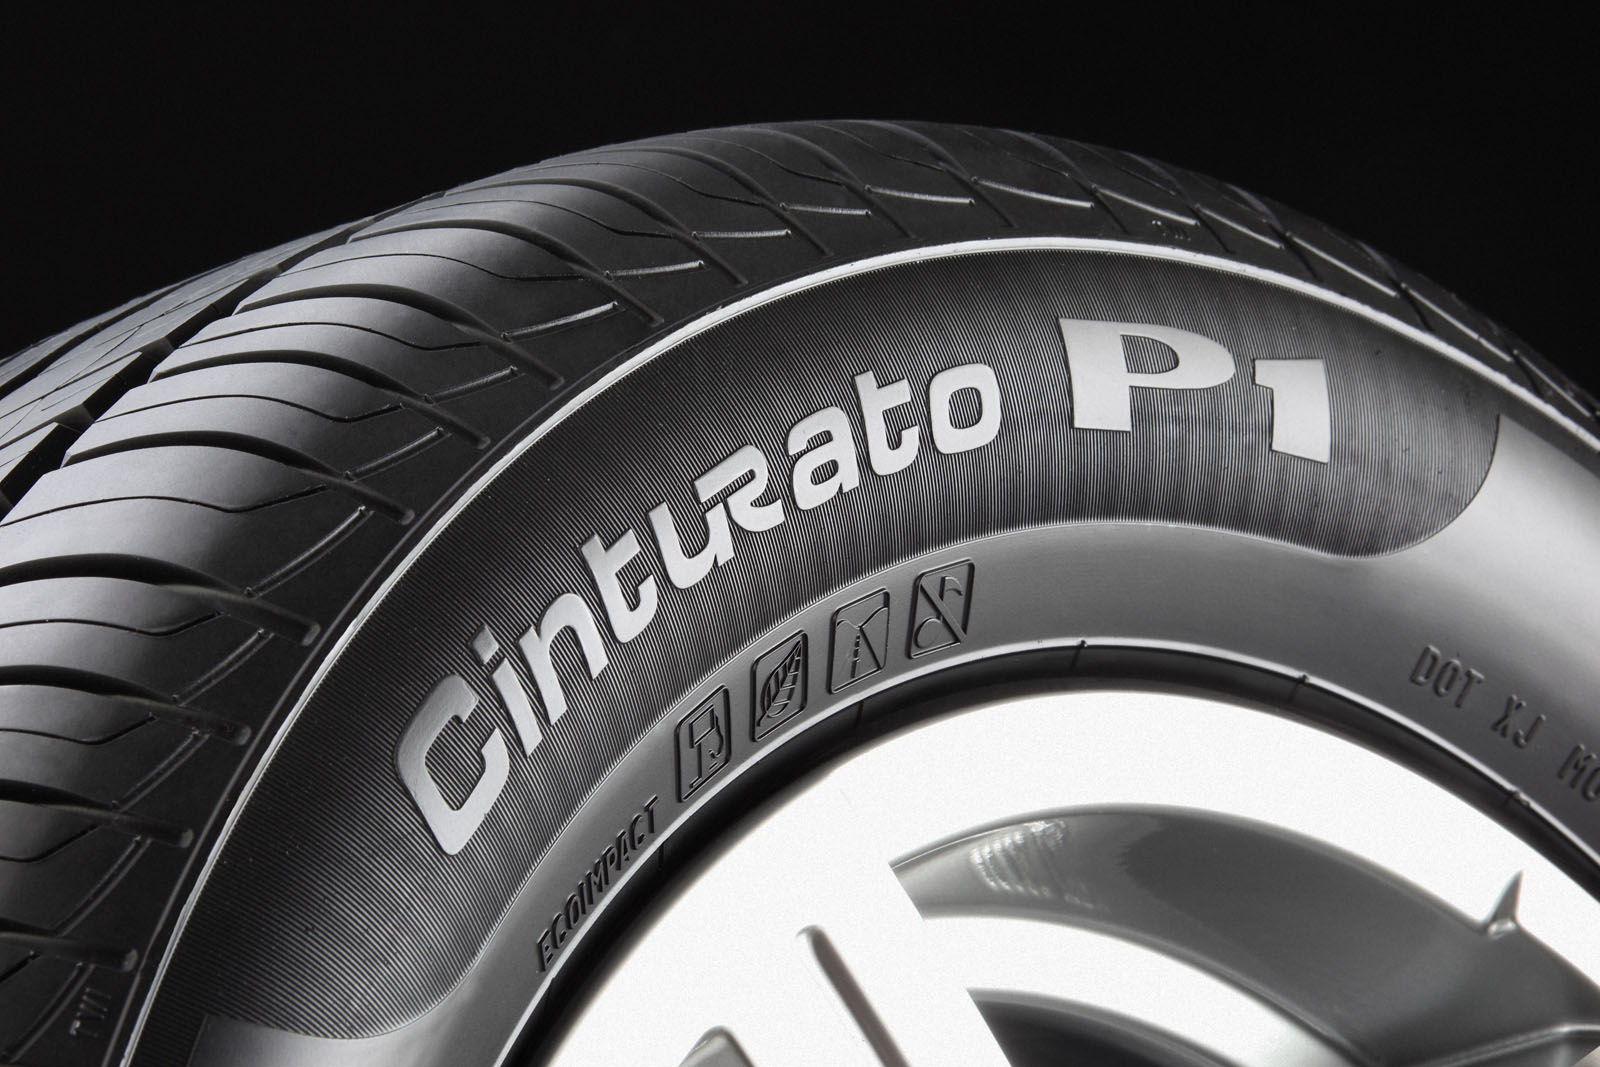 Car tyres are in for a major redesign